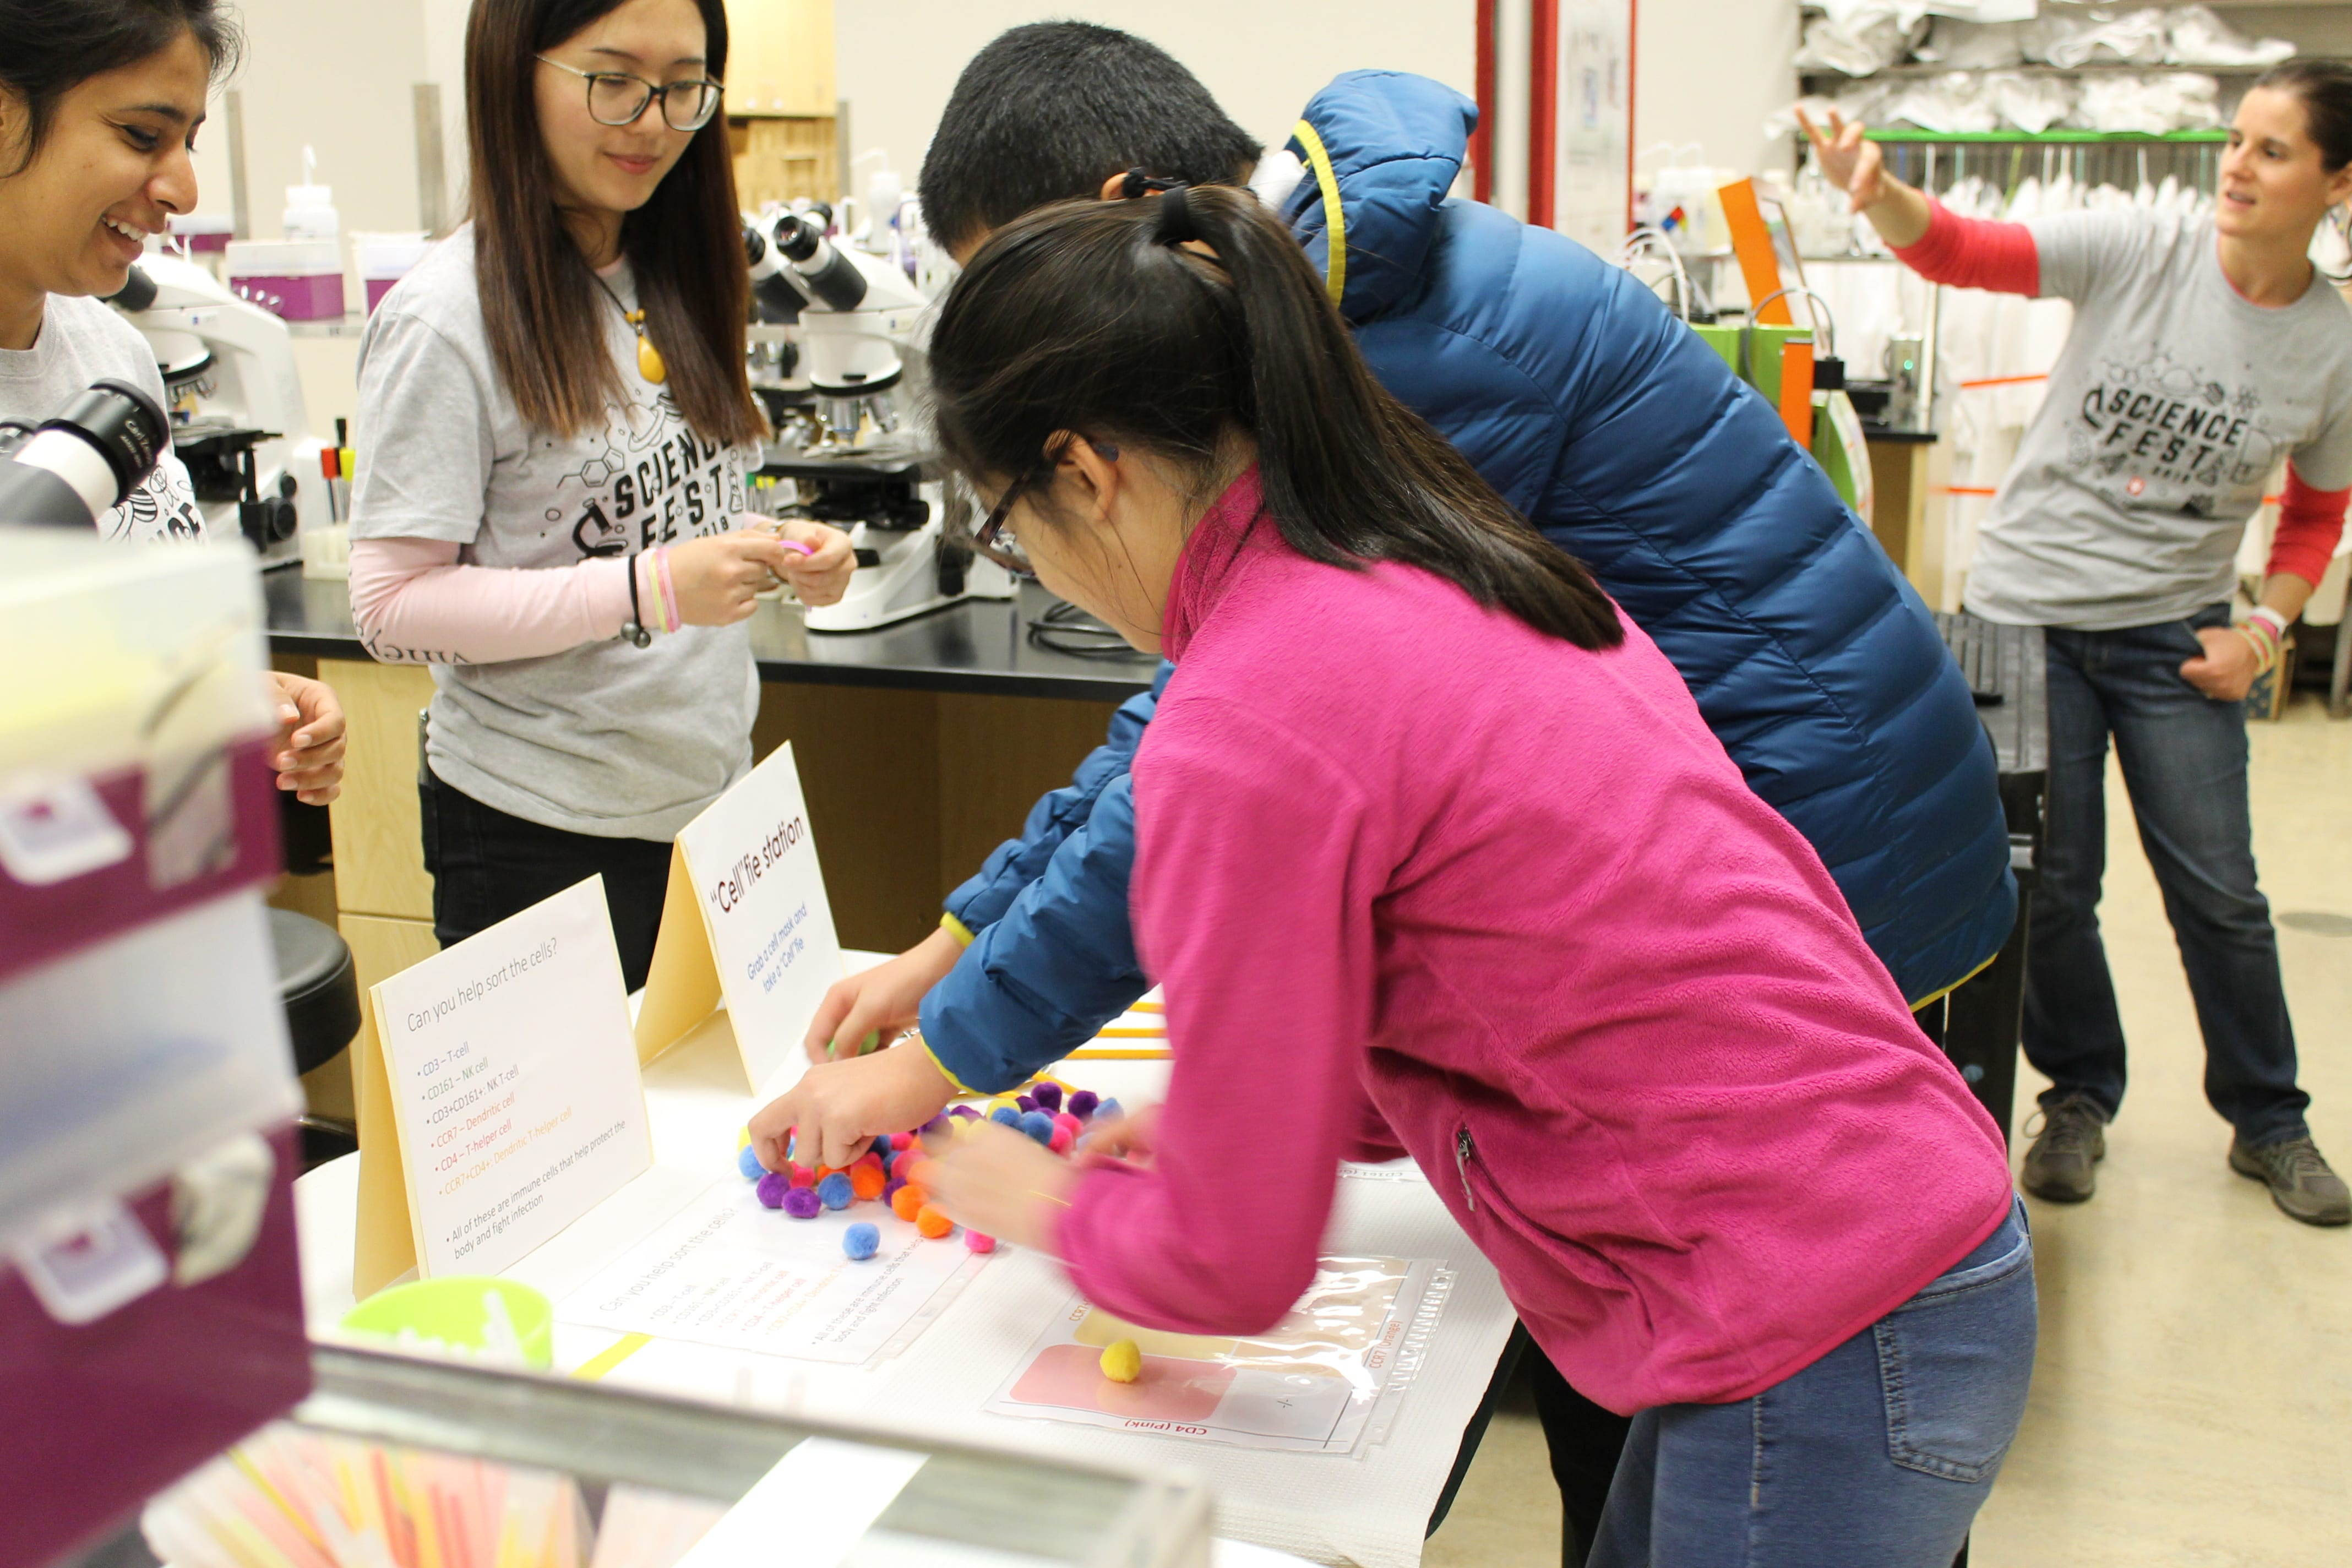 Two participants in the process of sorting cells (depicted by fuzzy pom-poms) while two science fest volunteers are cheering